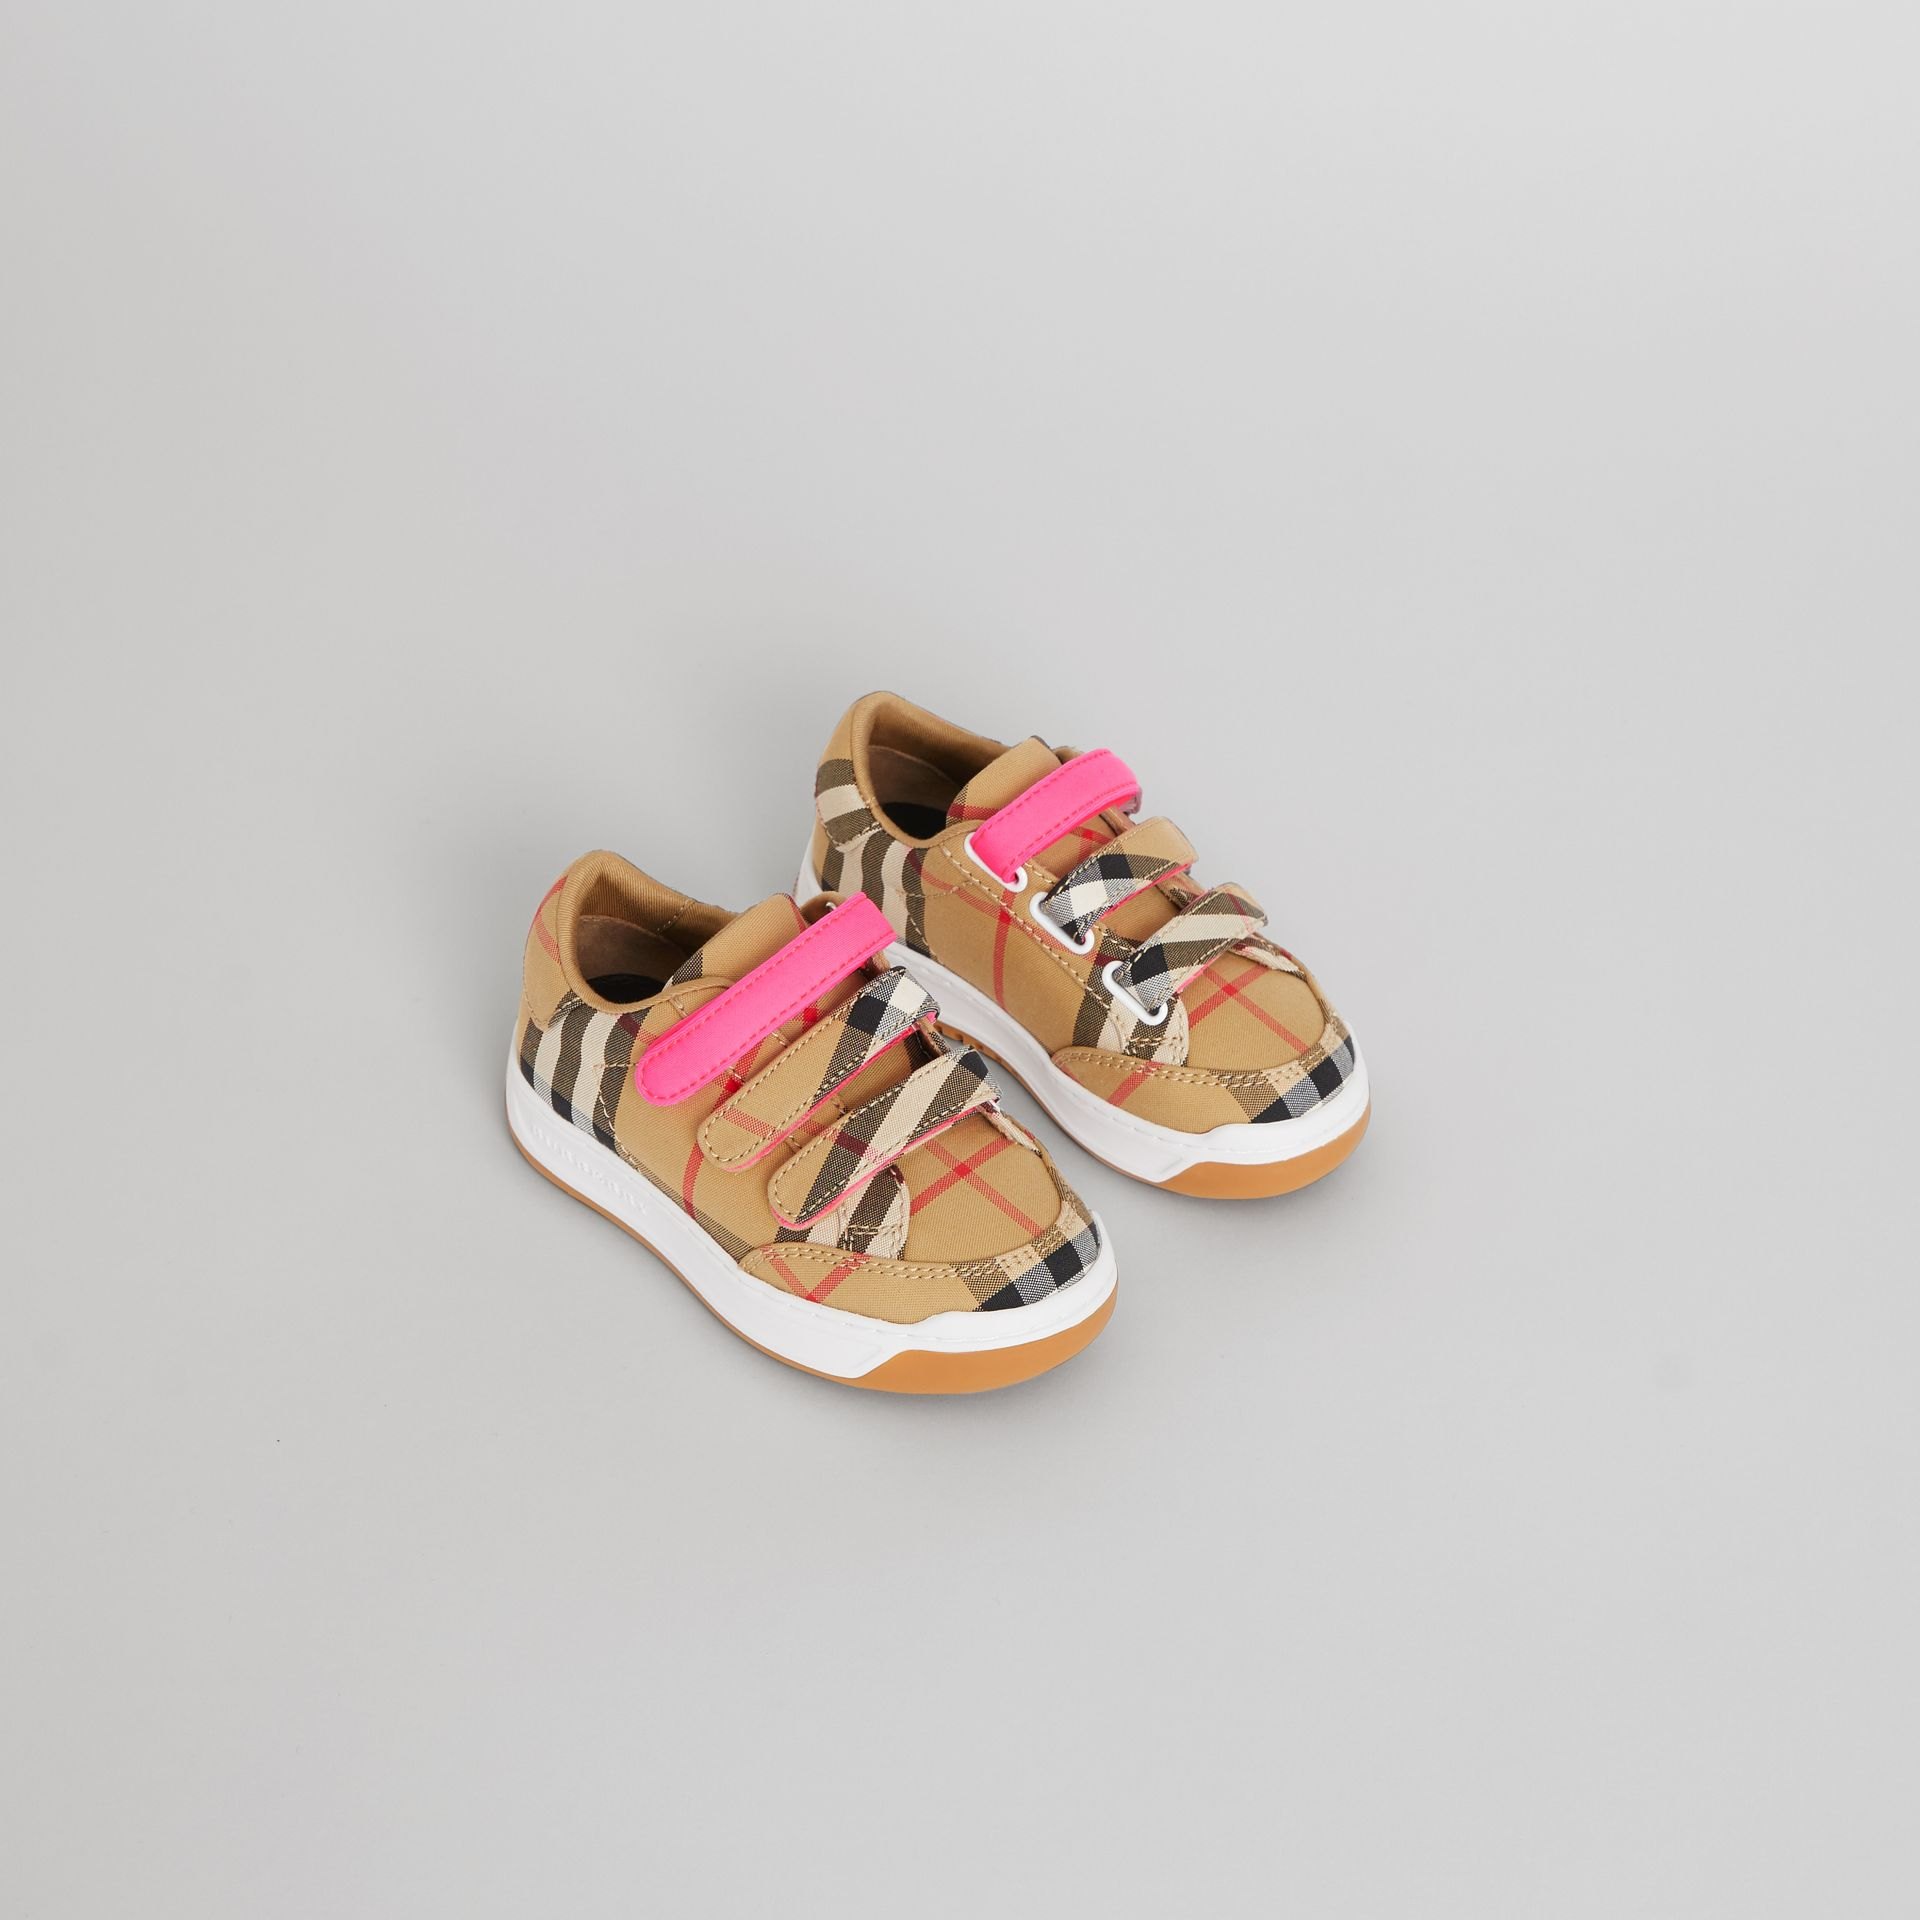 Sneakers à motif Vintage check (Jaune Antique/rose Néon) - Enfant | Burberry - photo de la galerie 0